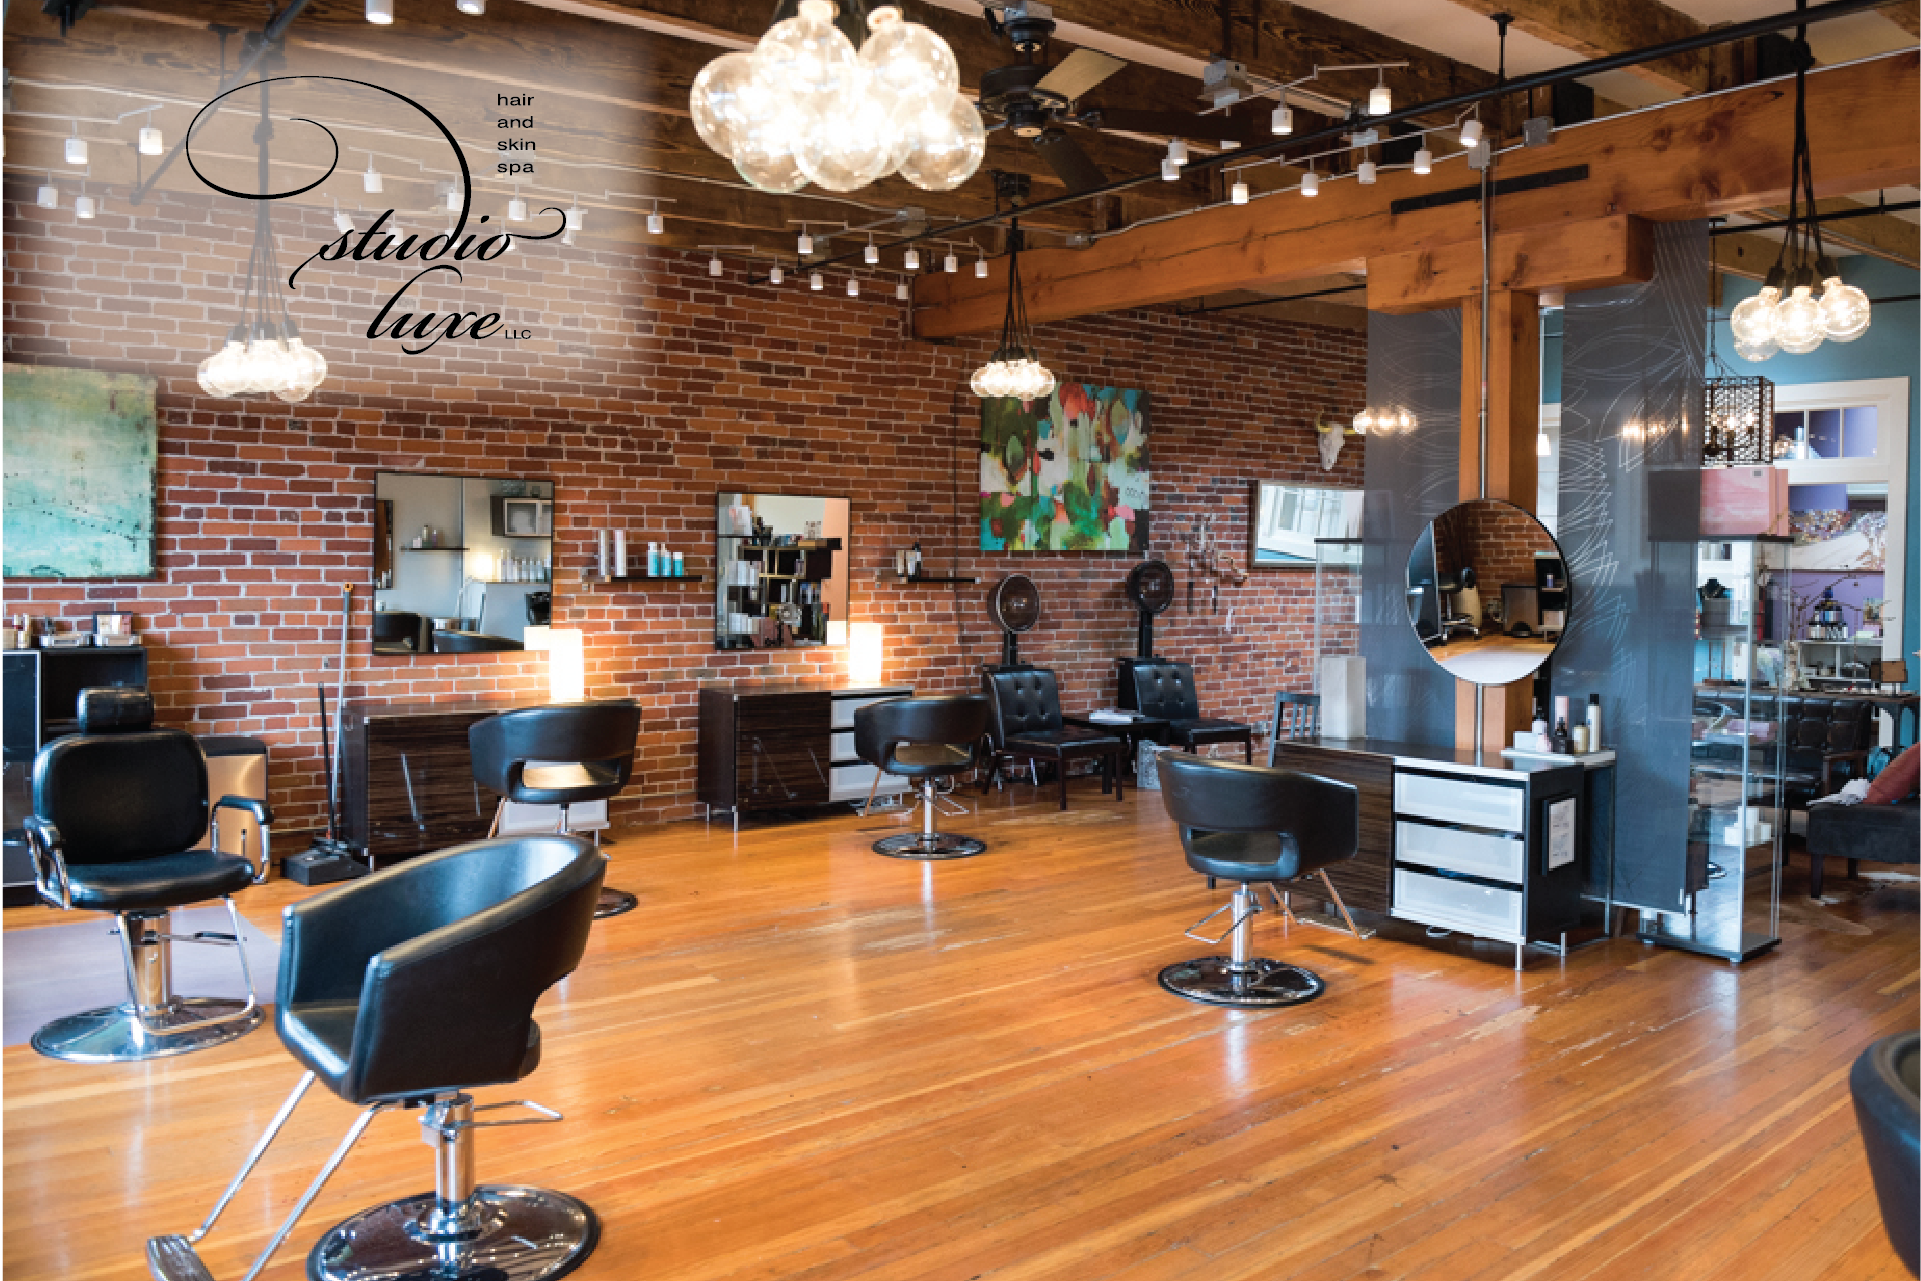 Salons in oregon eugene spas in oregon eugene hair for 77 salon portland